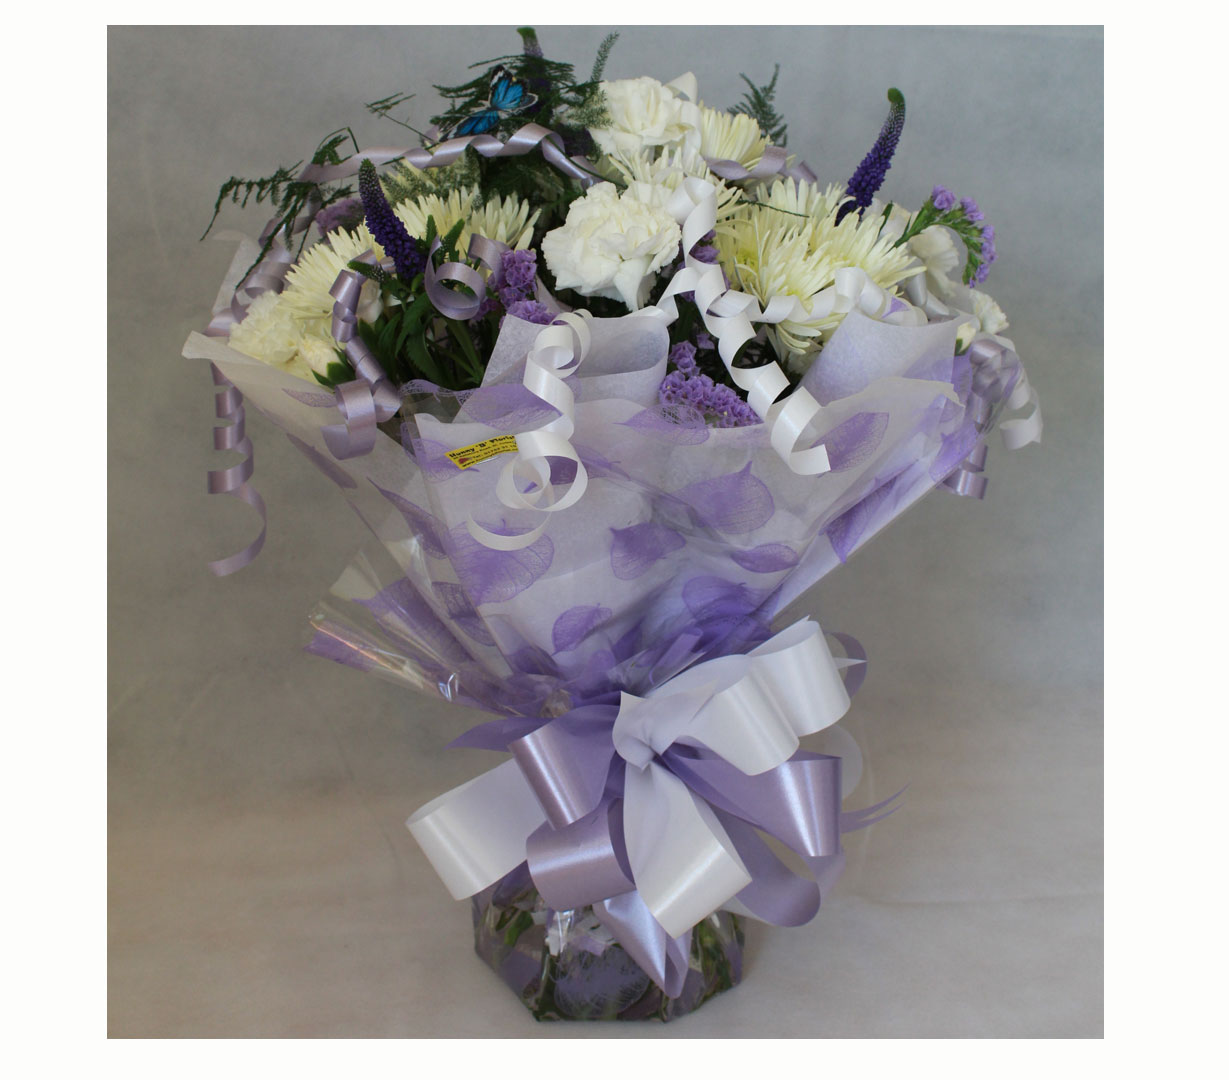 Hand Tied Cluster Bouquet of White and Purple Flowers